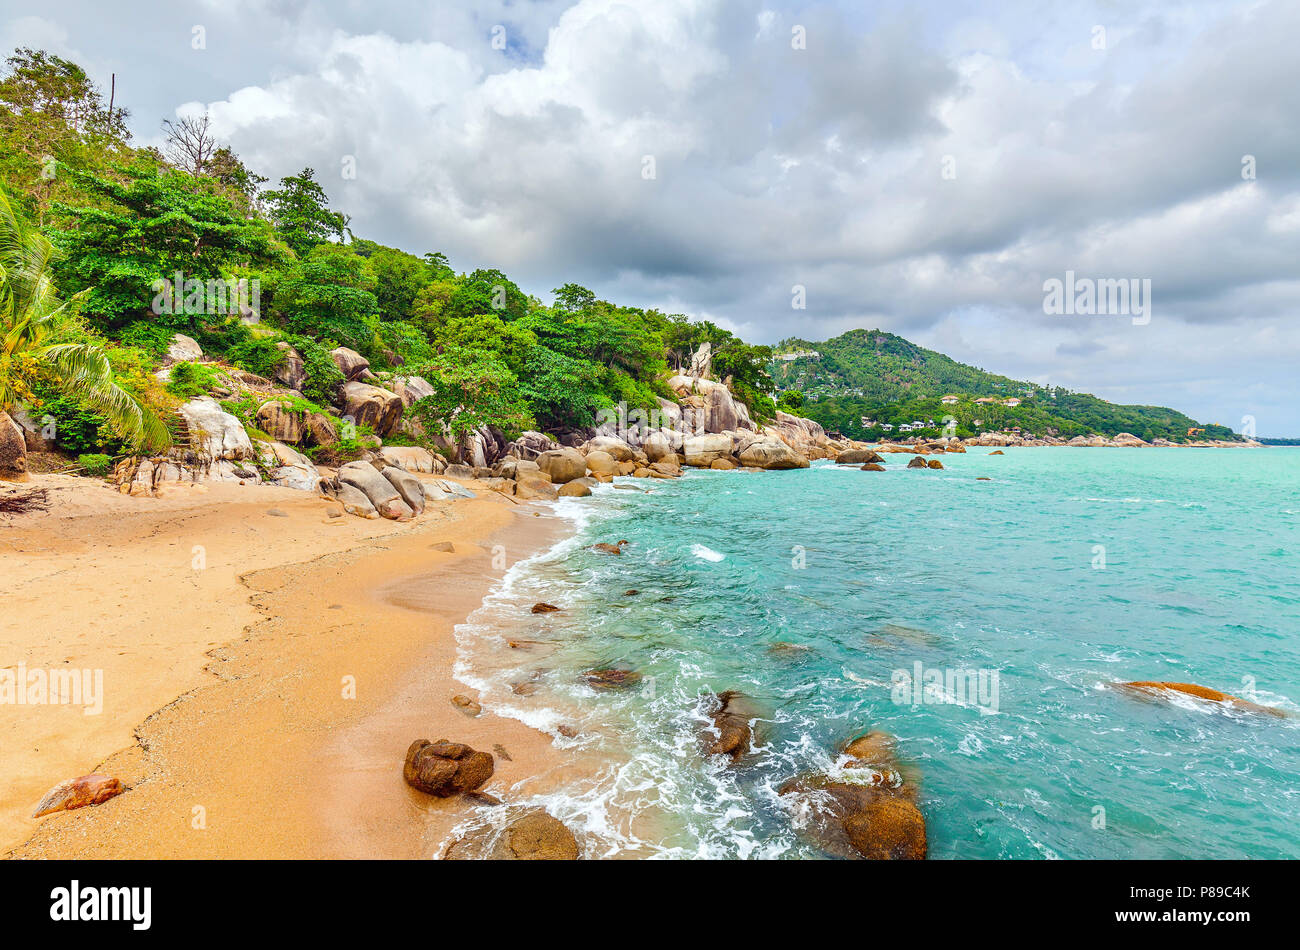 Beautiful beach on the island of Koh Samui in Thailand. - Stock Image